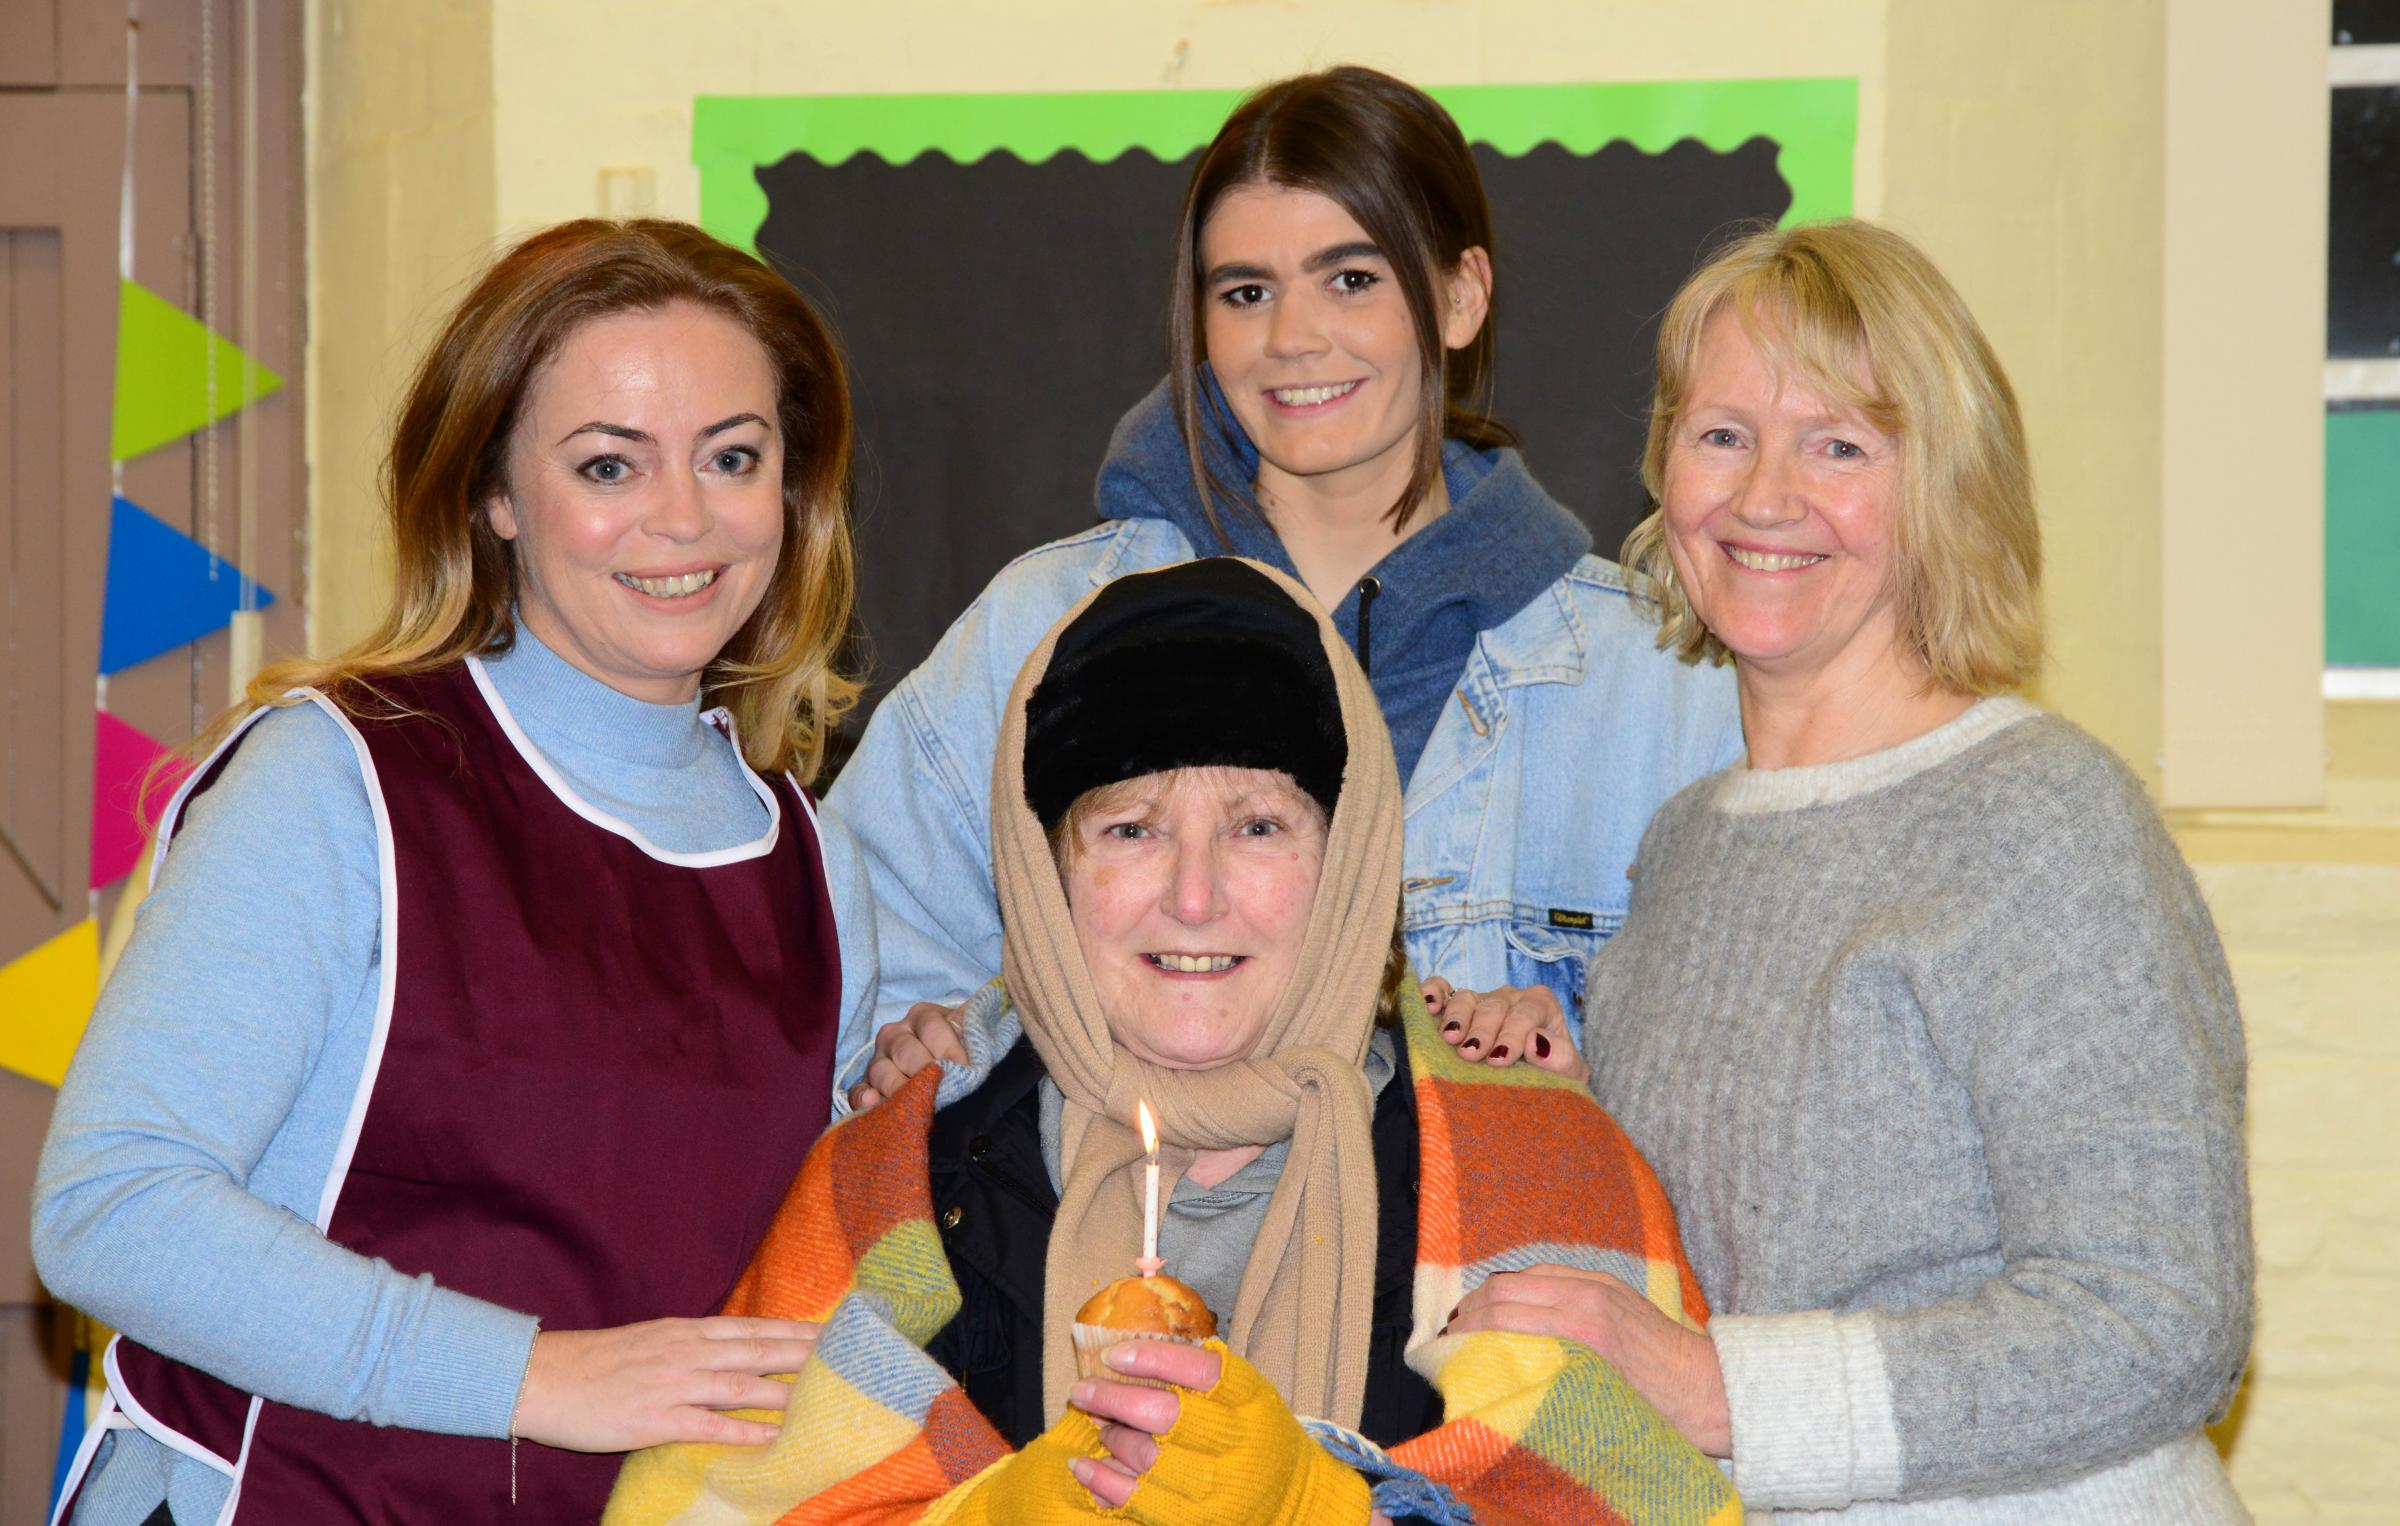 Cast members from Grove Park Theatre Wrexham, who will be taking part in the Clwyd Community Theatre Association Festival of One Act Plays, held at Theatr Clwyd on March 9-10.